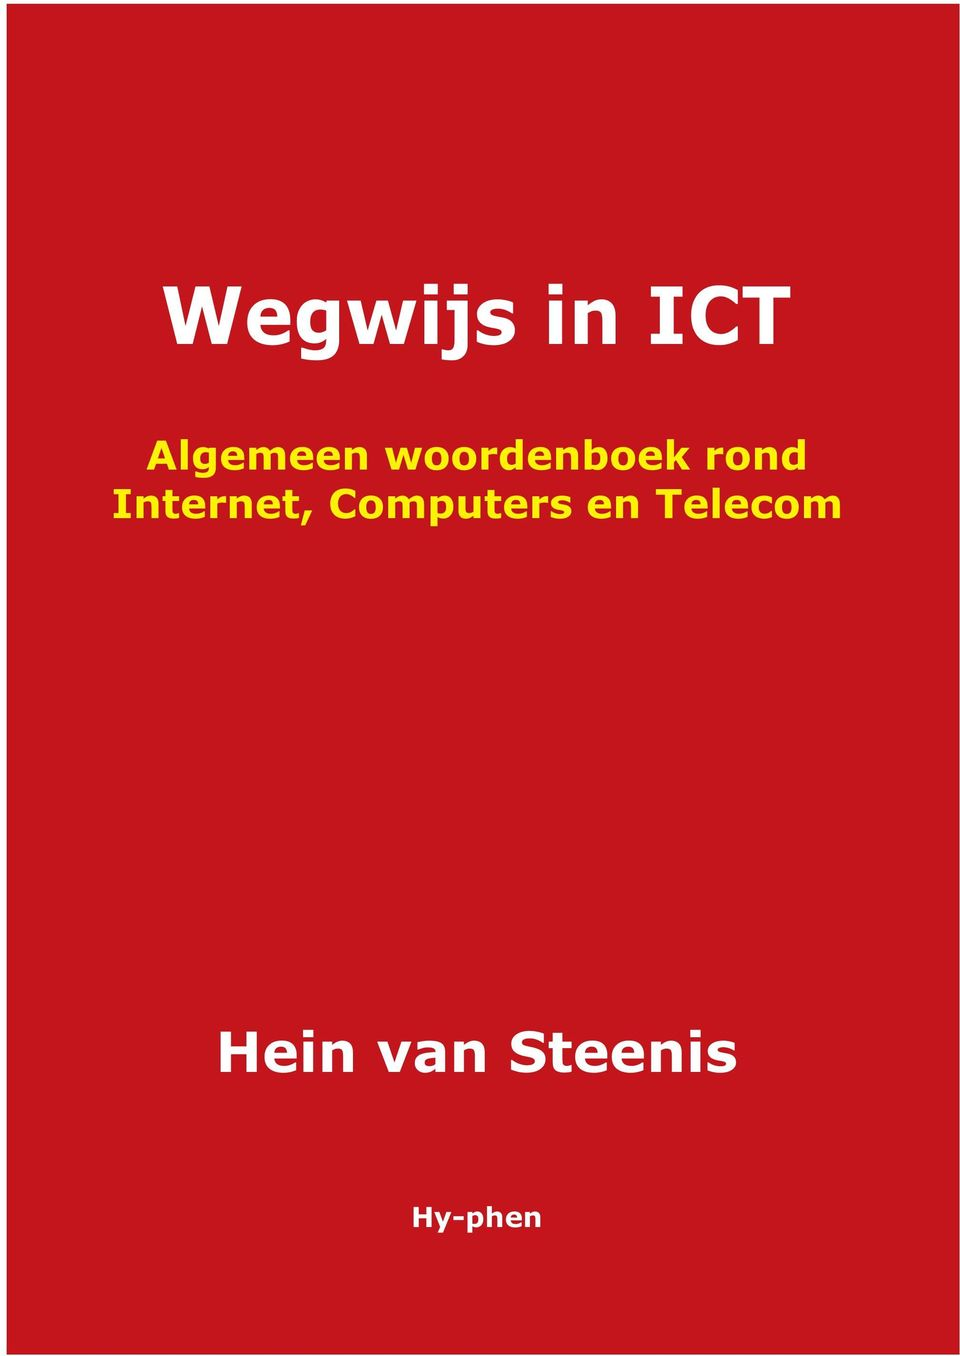 woordenboek Computers Telecom rond